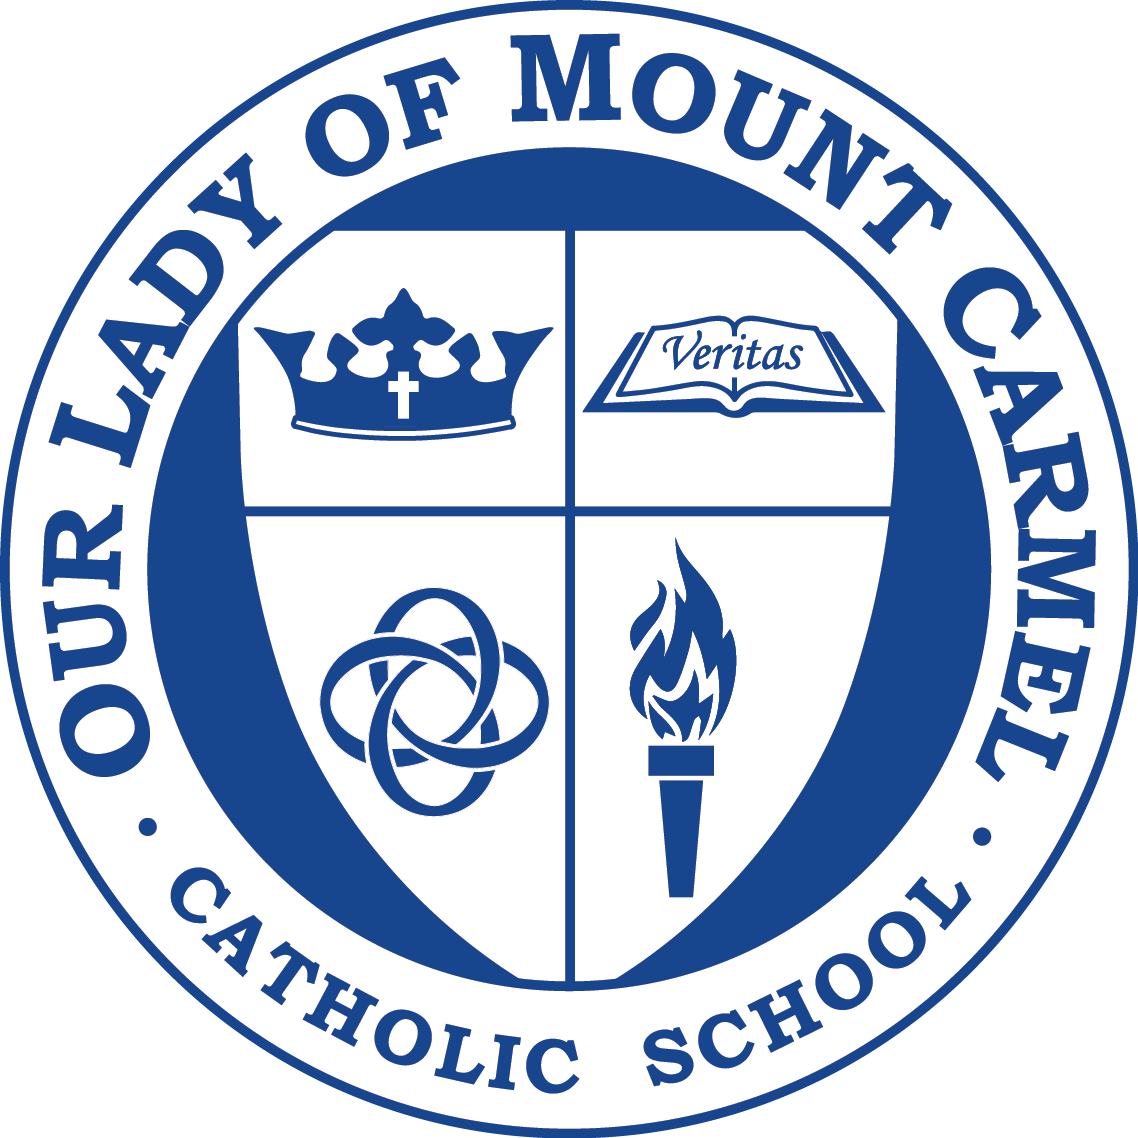 Manna Gift Card Program – Our Lady of Mount Carmel